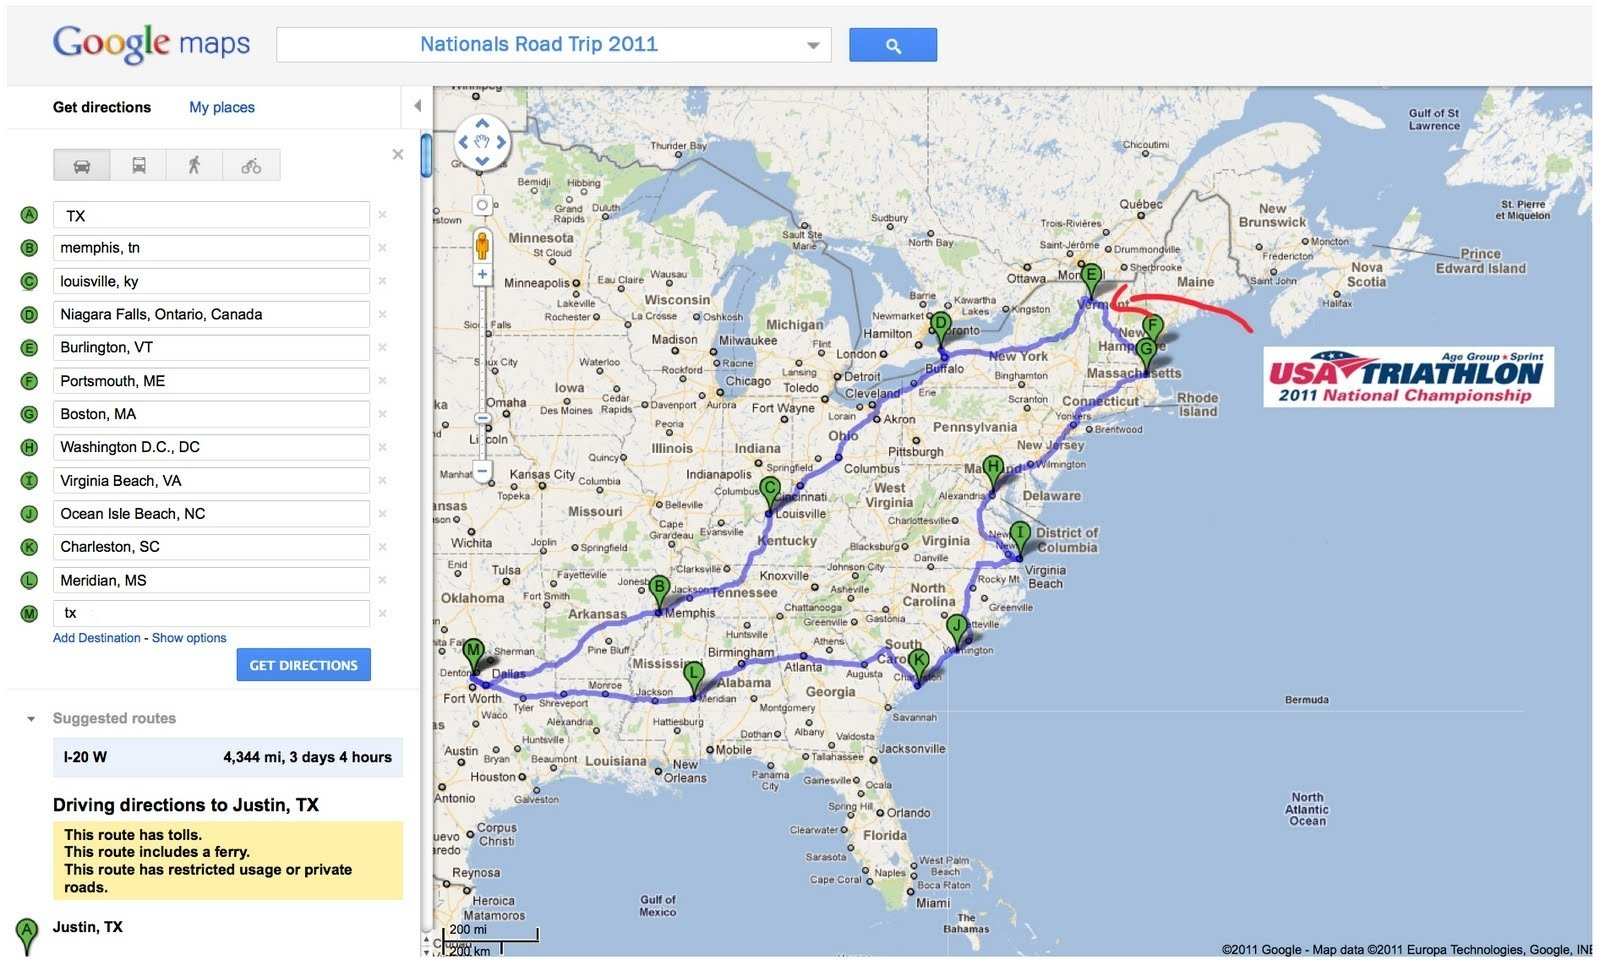 iron texas mommy: tentative road trip - need your east coast ideas!!